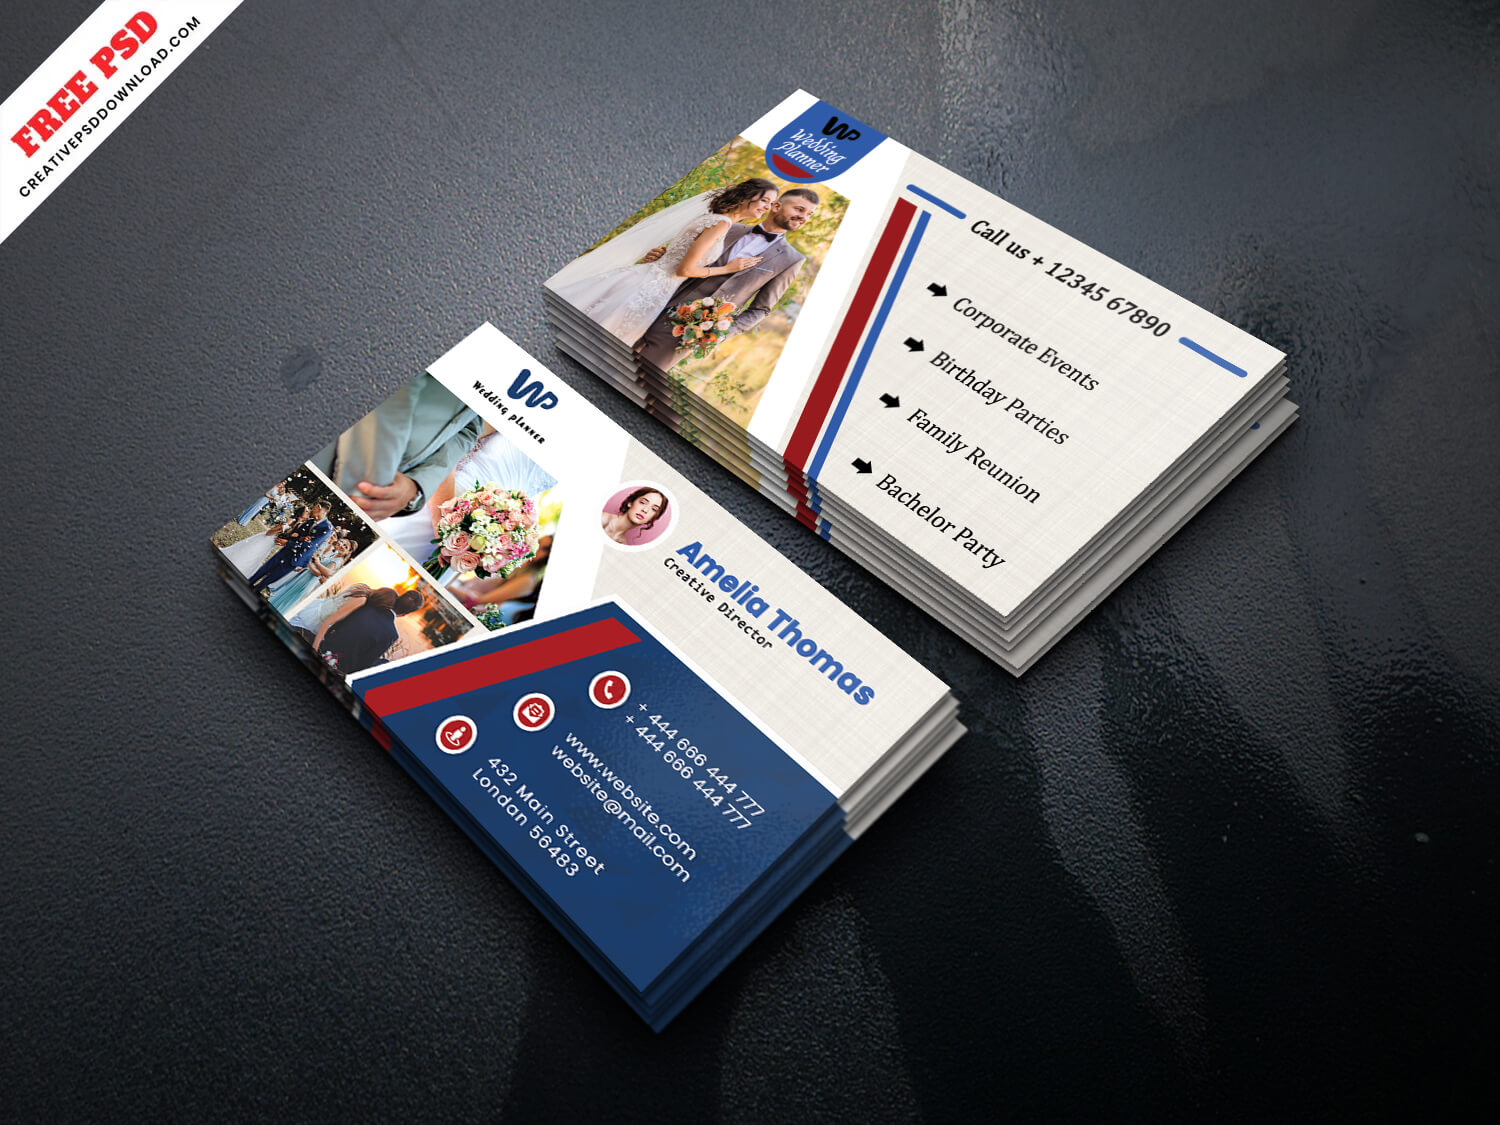 business card, free business card, premium business card mockup, creative business card mockup, creative free business card mockup, prime business card mockup, i am prime, business card freebie mockup, creative business card freebie, corporate business card mockup, free corporate business card mockup, premium corporate business card, business card mockup psd, free business card mockup psd, corporate business card mockup psd, free psd business card mockup, corporate psd buisness card mockup, premium psd buisness card